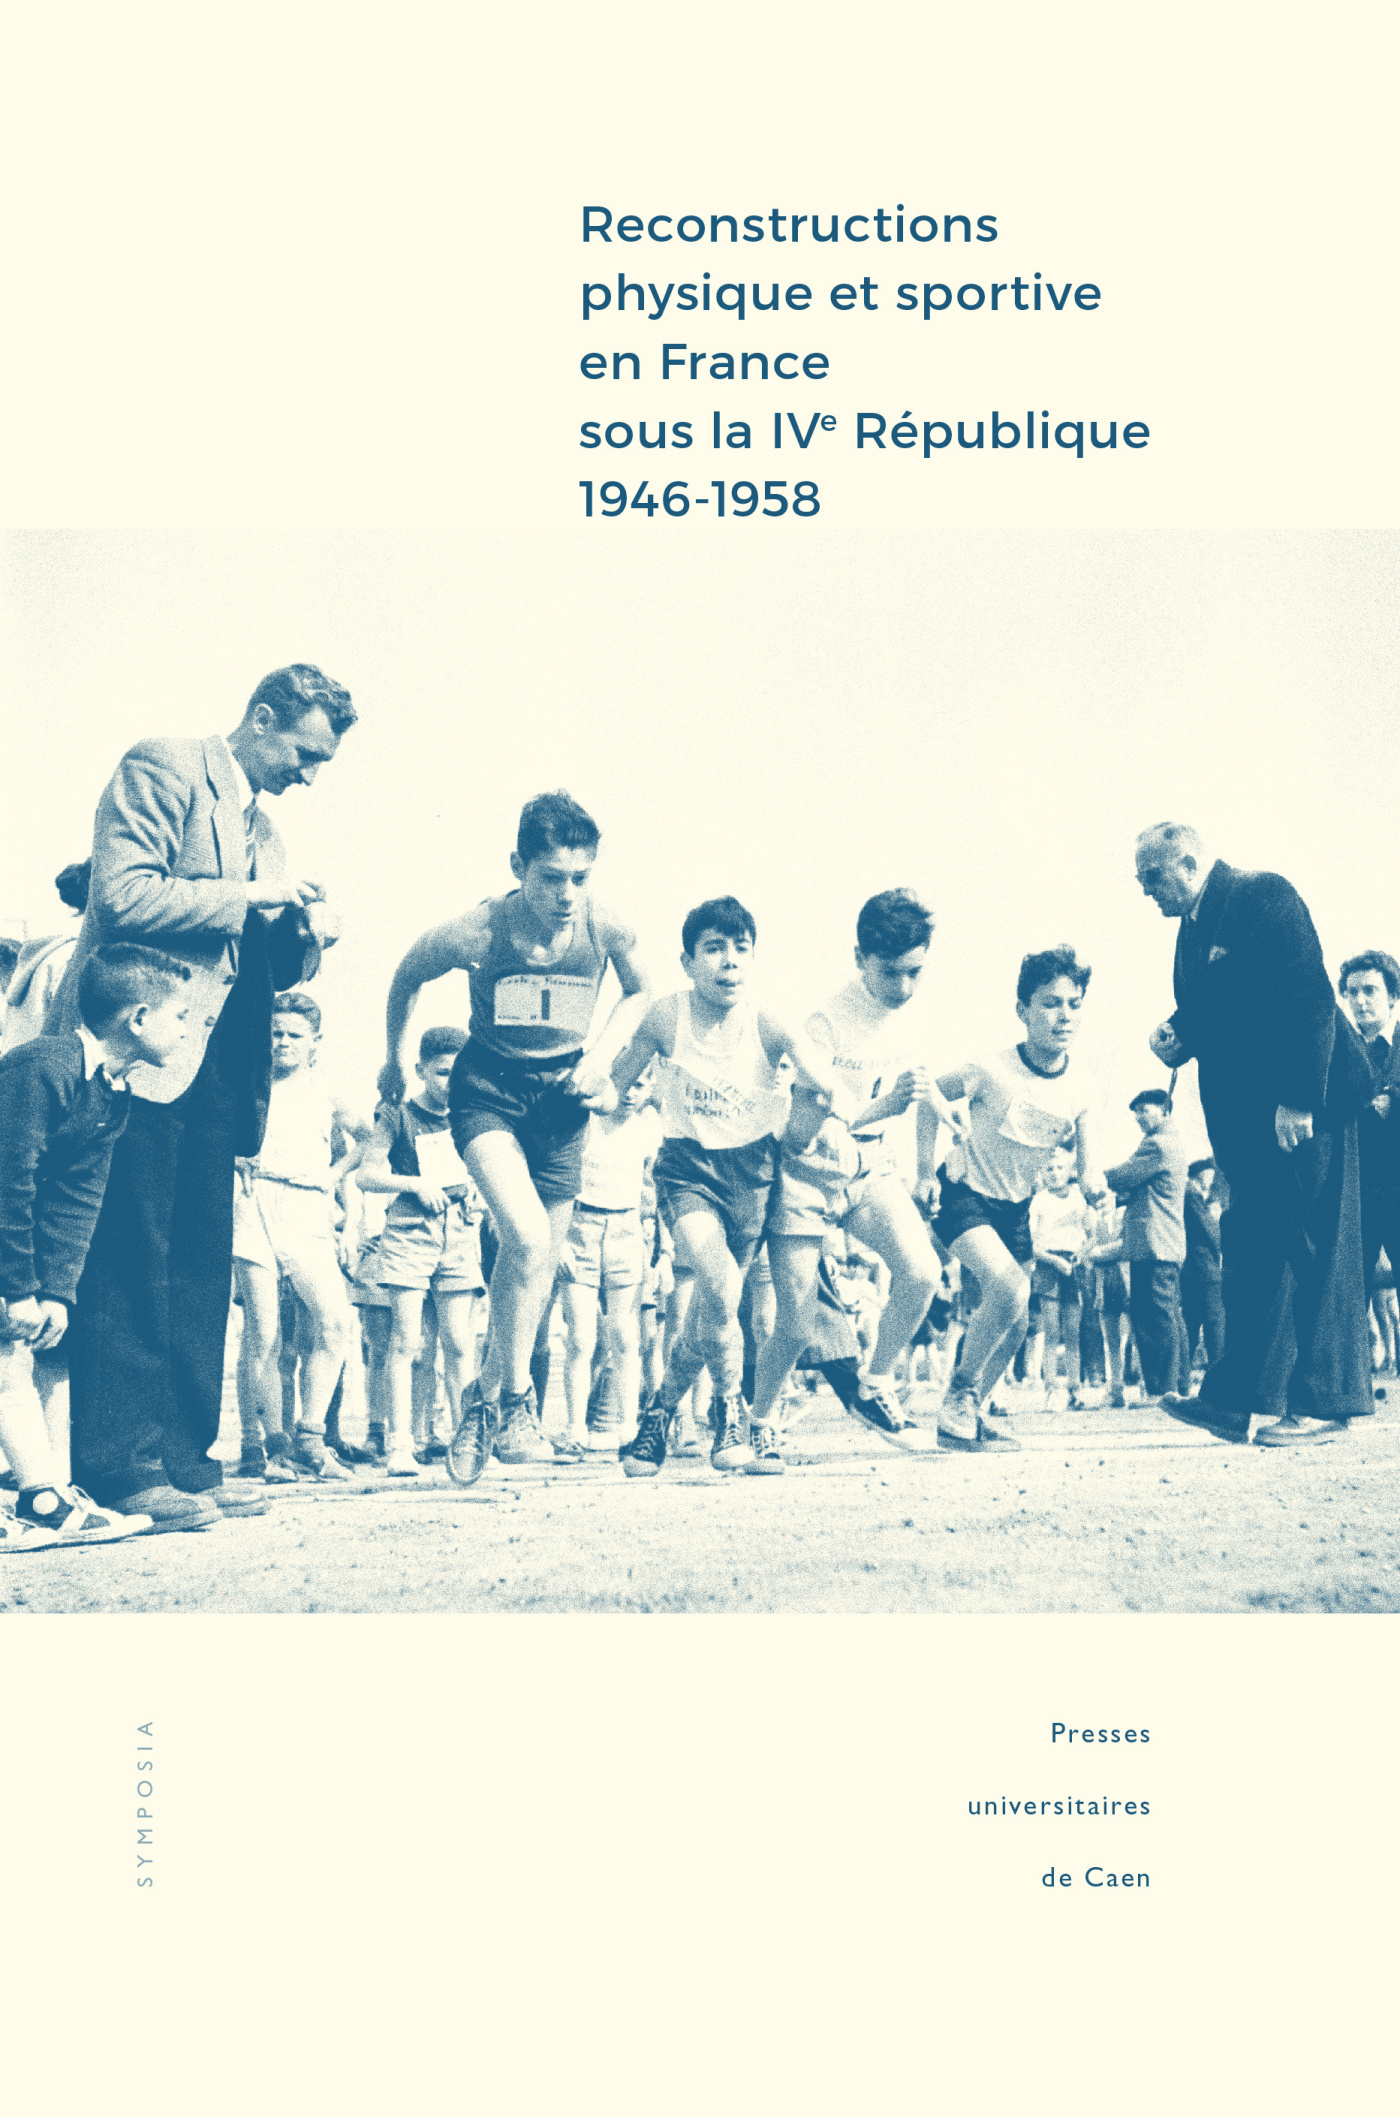 RECONSTRUCTIONS PHYSIQUE ET SPORTIVE EN FRANCE SOUS LA IVE REPUBLIQUE  (1946-1958). ENTRE INTENTIONS